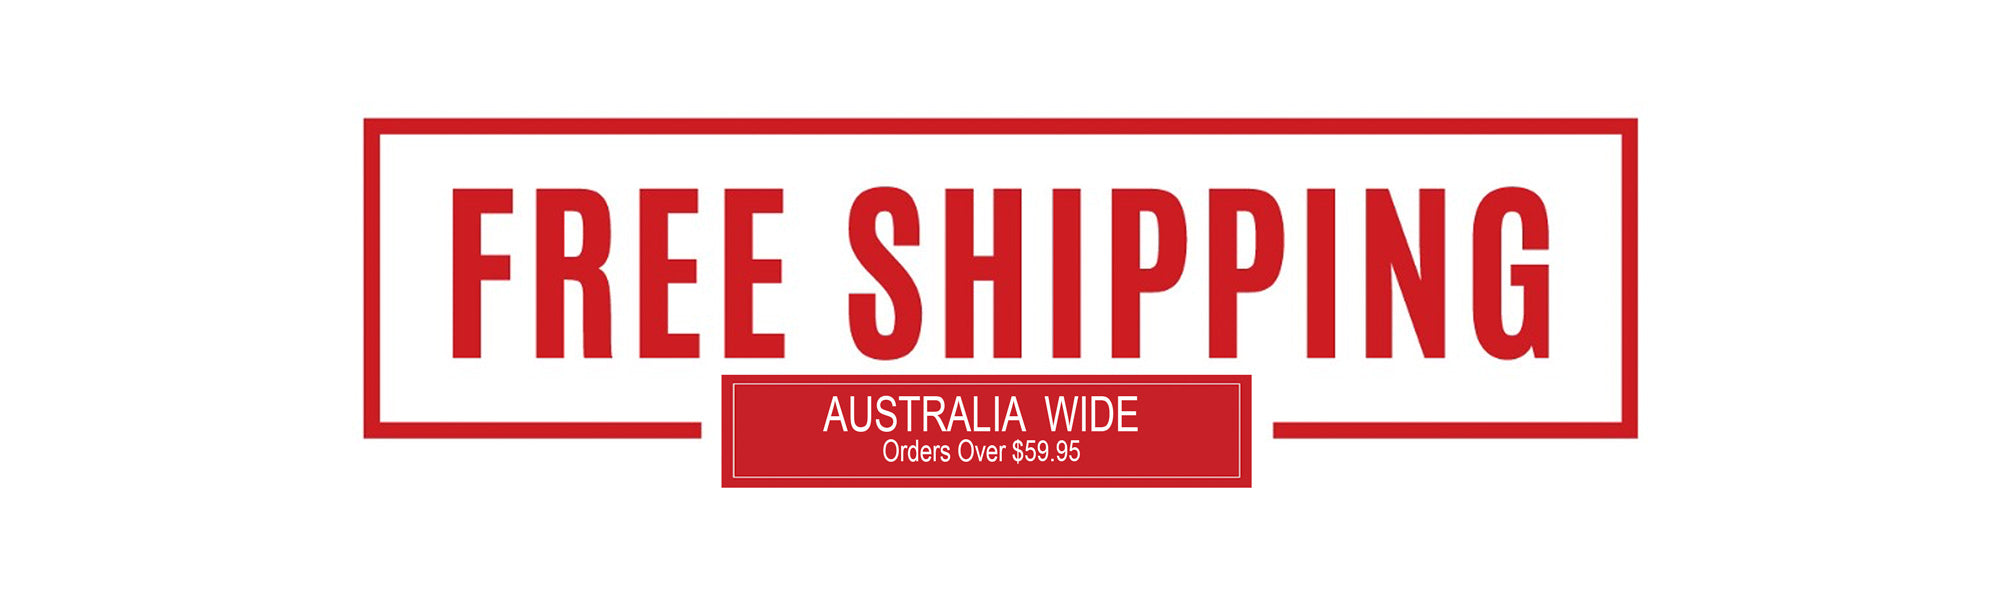 Free Shipping - Orders Over $59.95